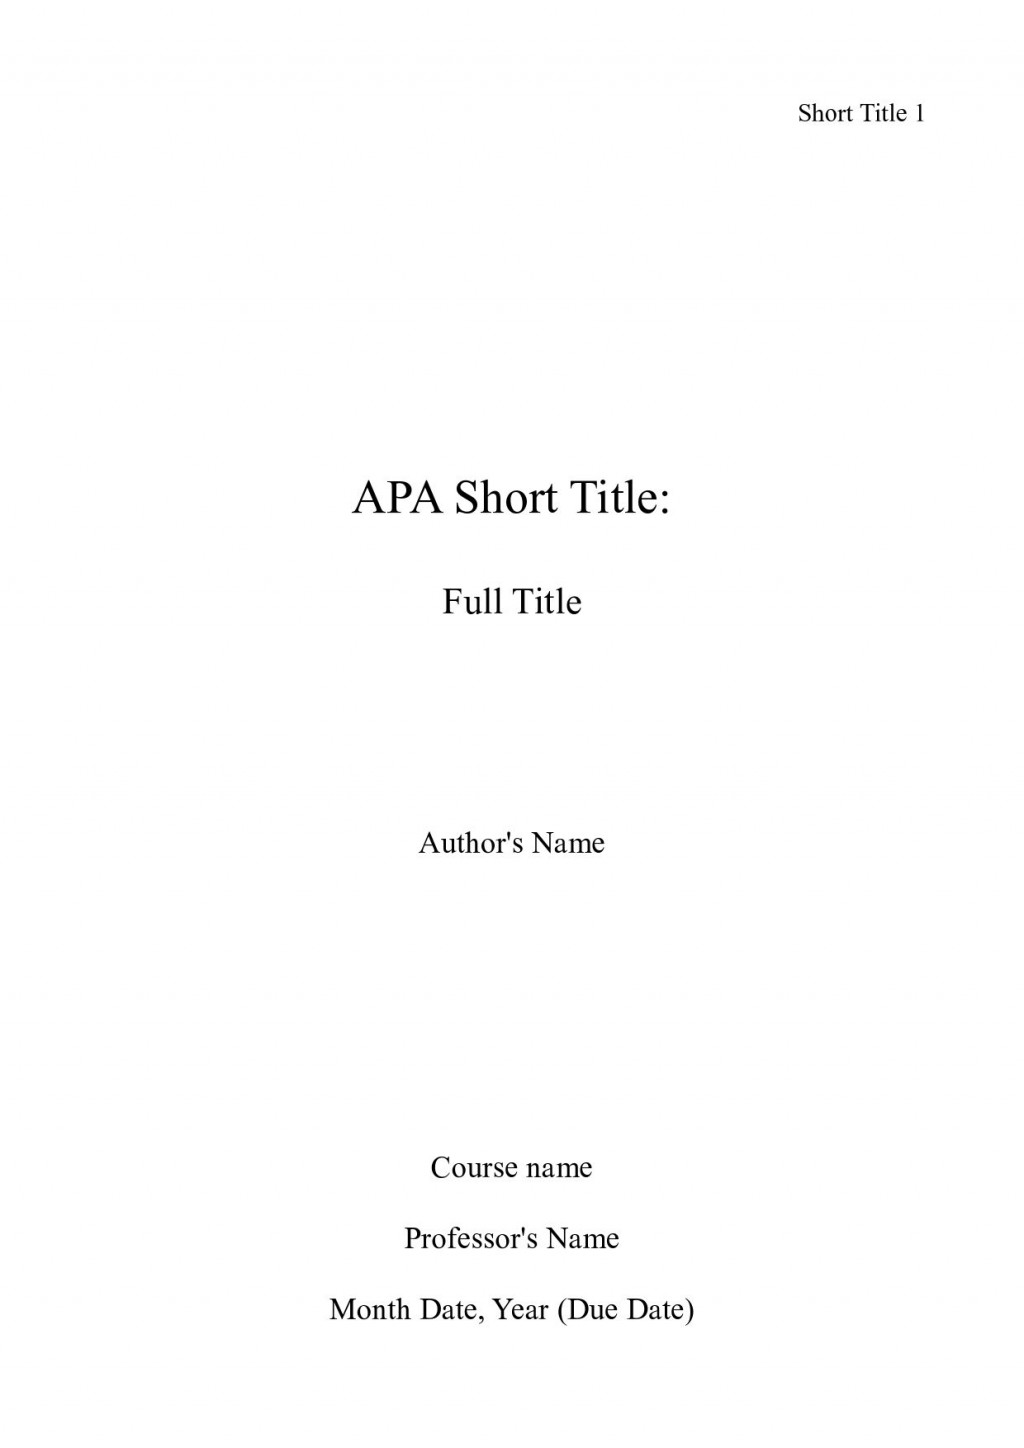 007 Research Paper Apa Format Cover Page Fearsome Style Abstract Large